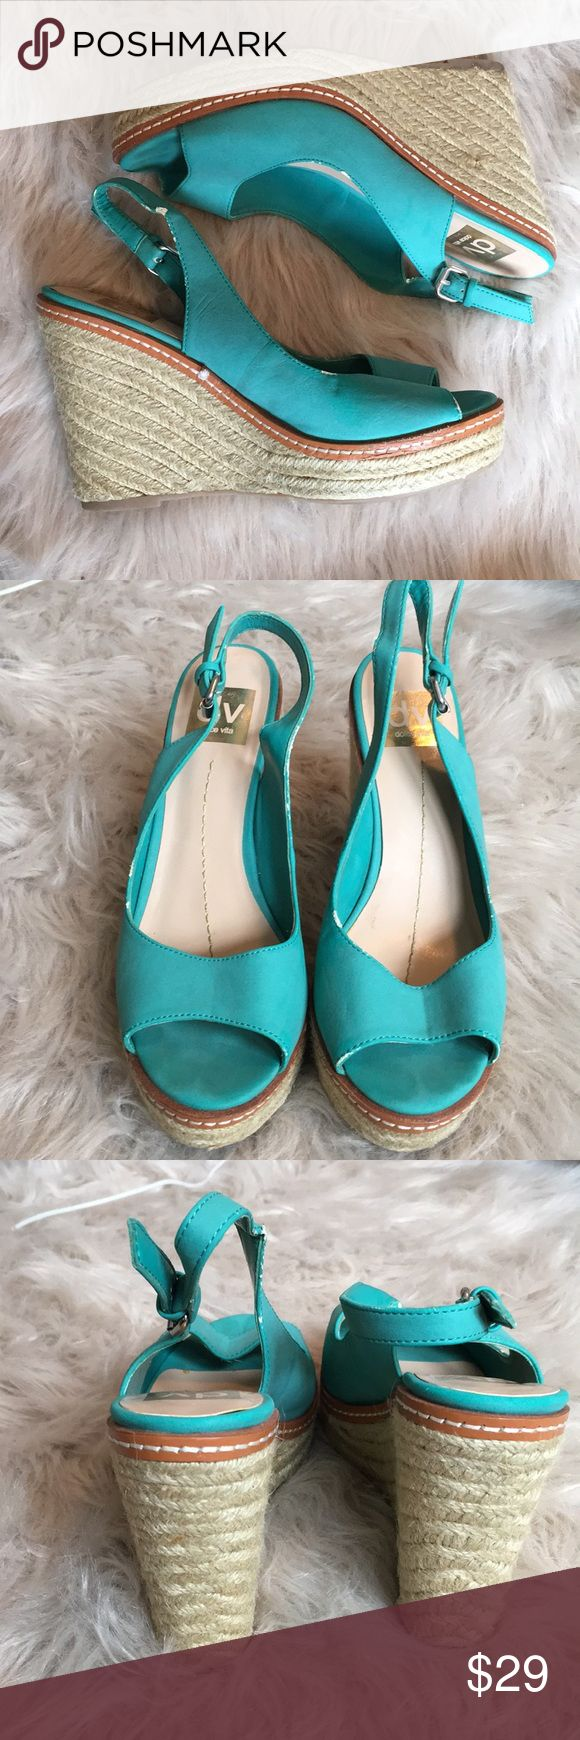 Dolce Vita Turquoise Wedges Turquoise Wedges with adjustable heel strap. Dolce Vita Shoes Wedges